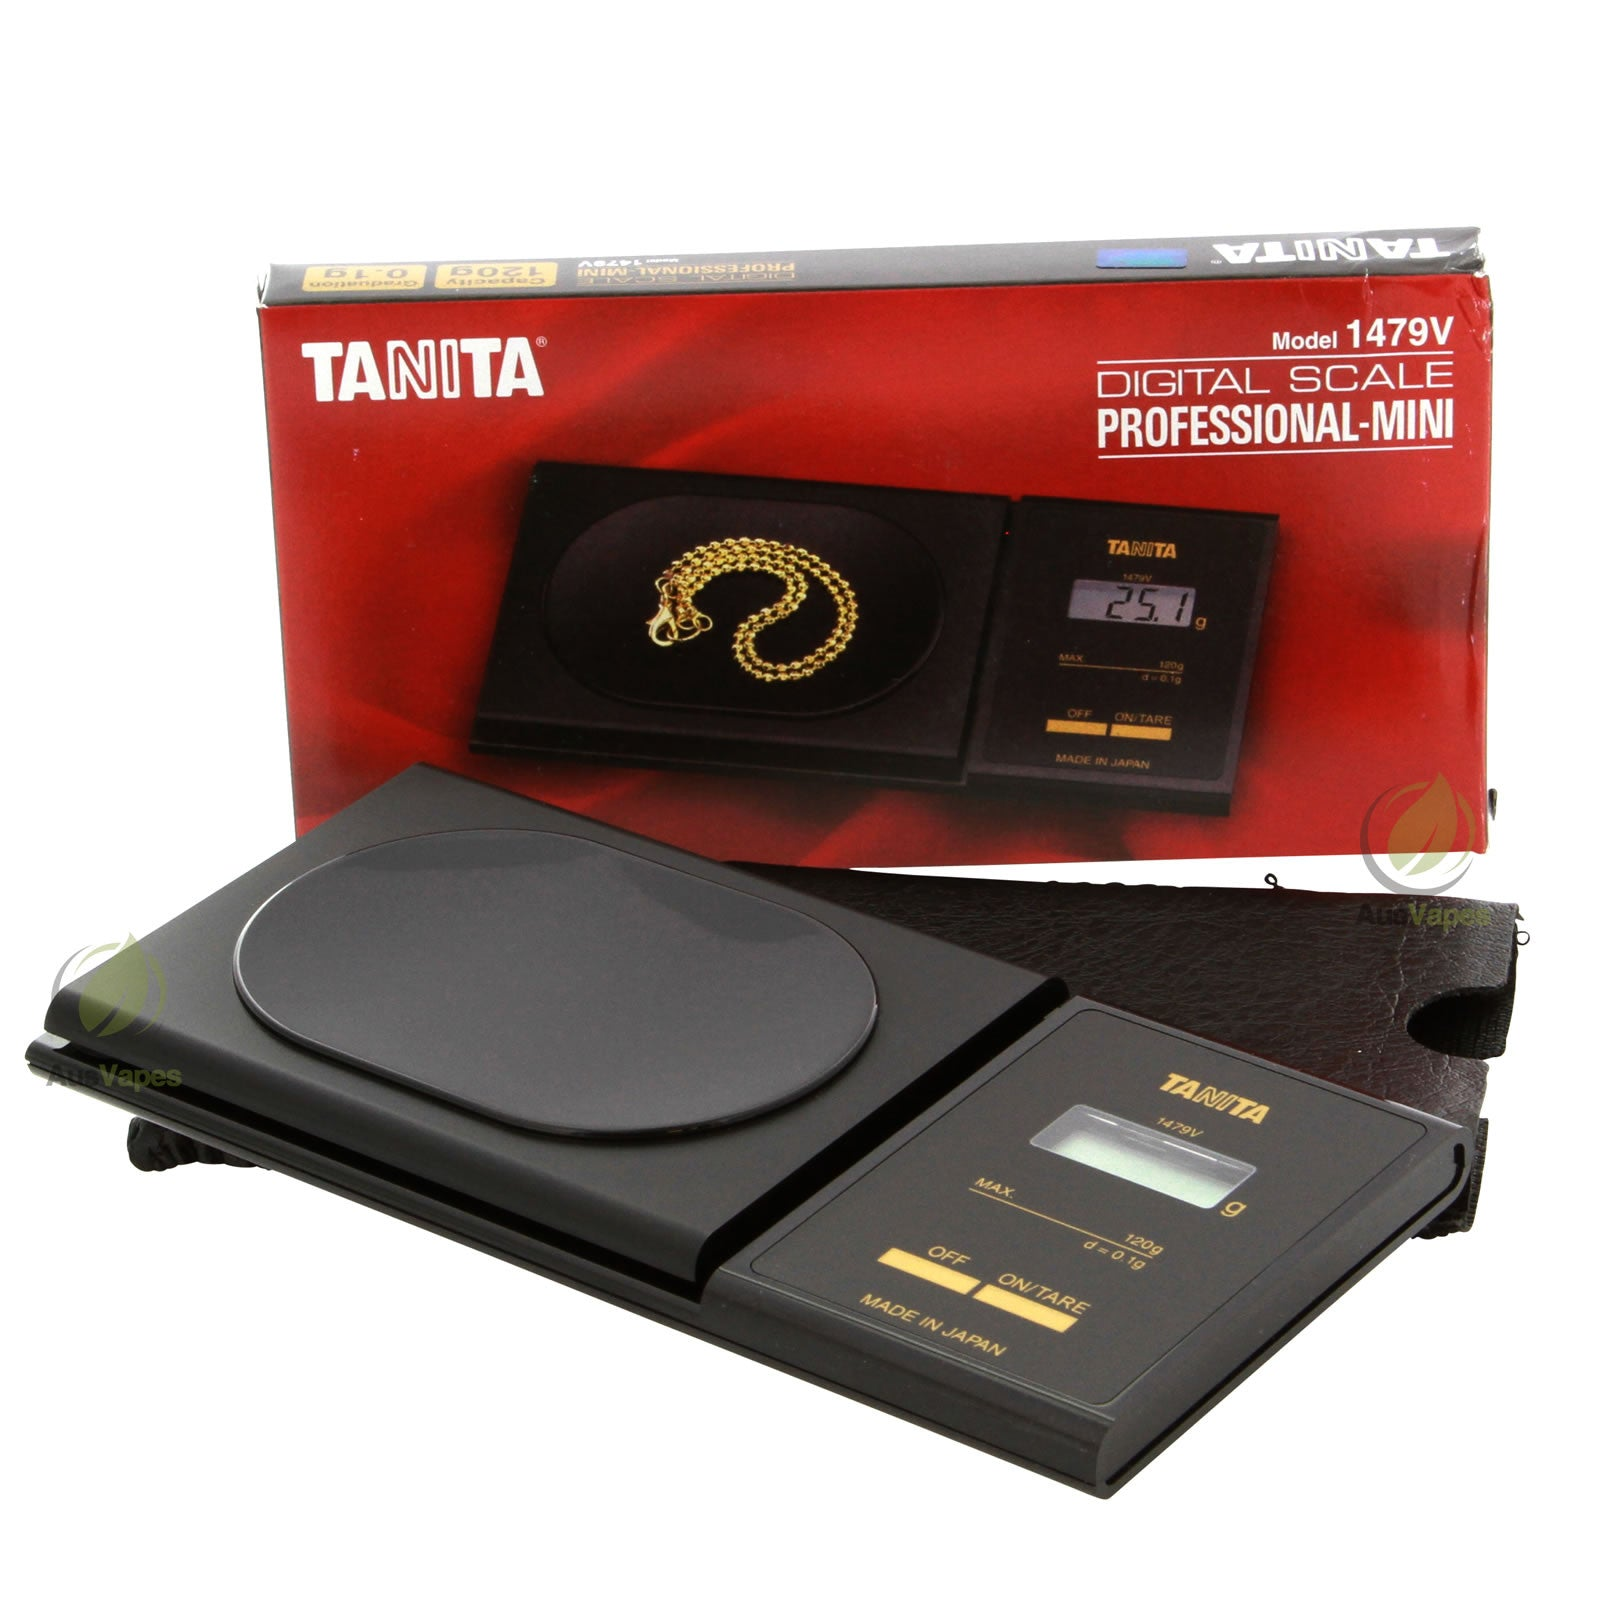 DISCONTINUED Tanita 1479V Professional Mini Digital Scale 120g x 0.1g